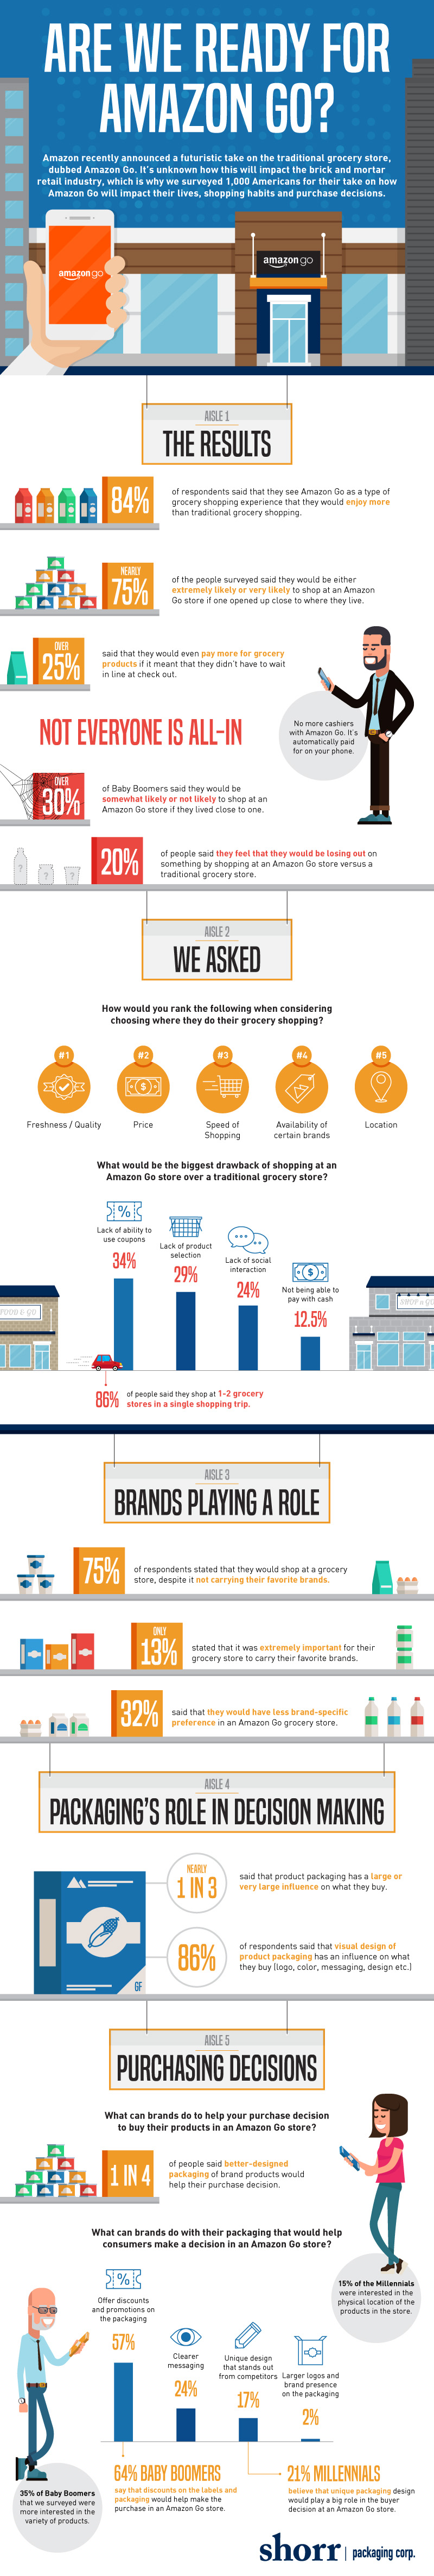 Are We Ready for Amazon Go? [Infographic]